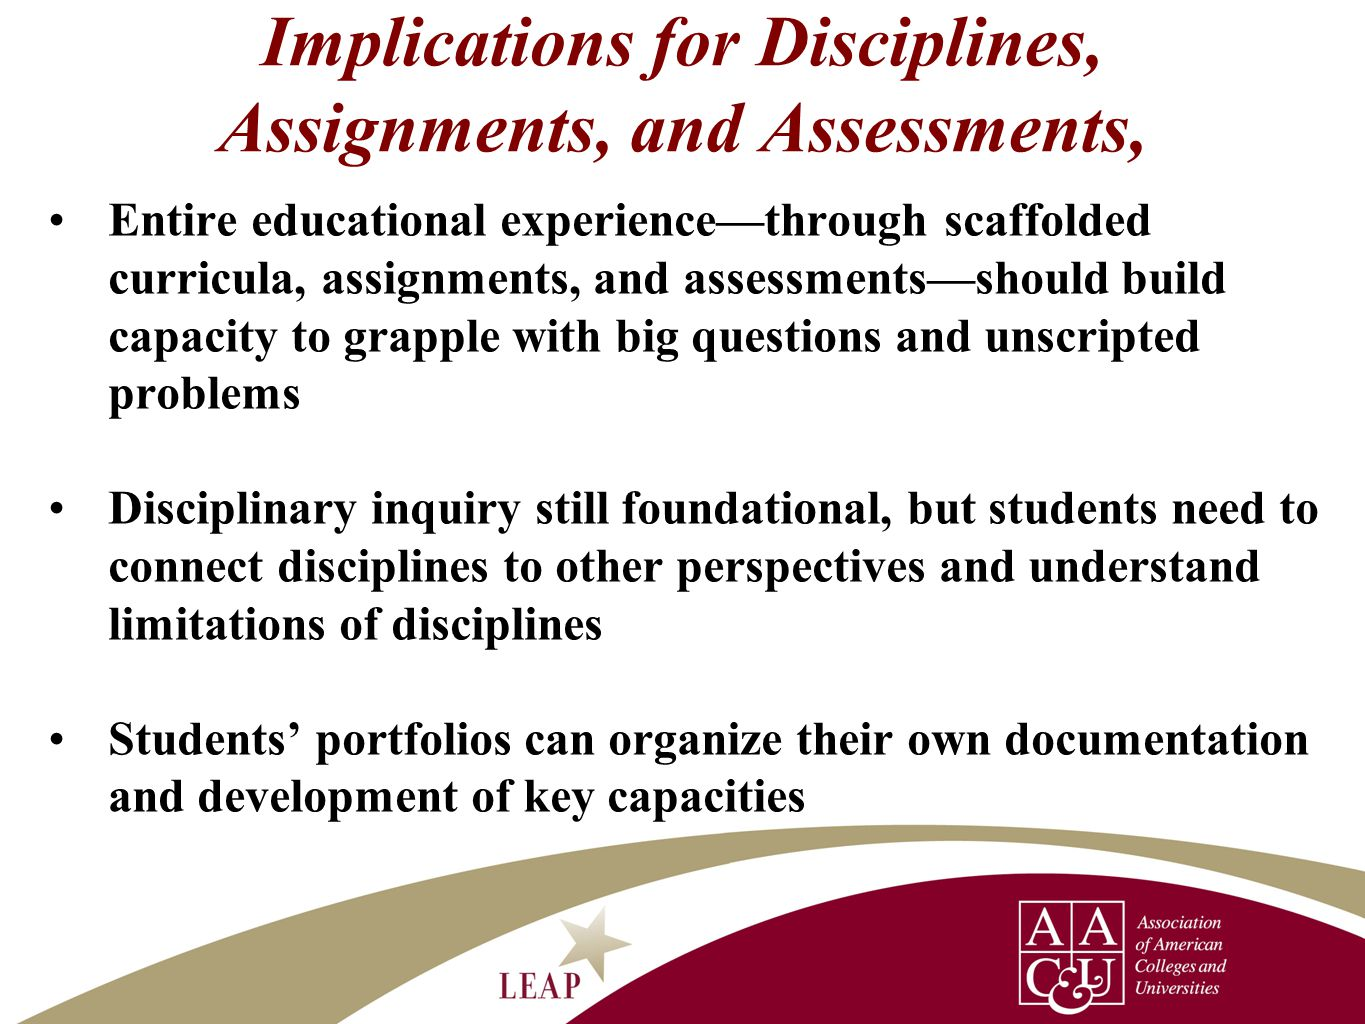 Implications for Disciplines, Assignments, and Assessments, Entire educational experience—through scaffolded curricula, assignments, and assessments—s